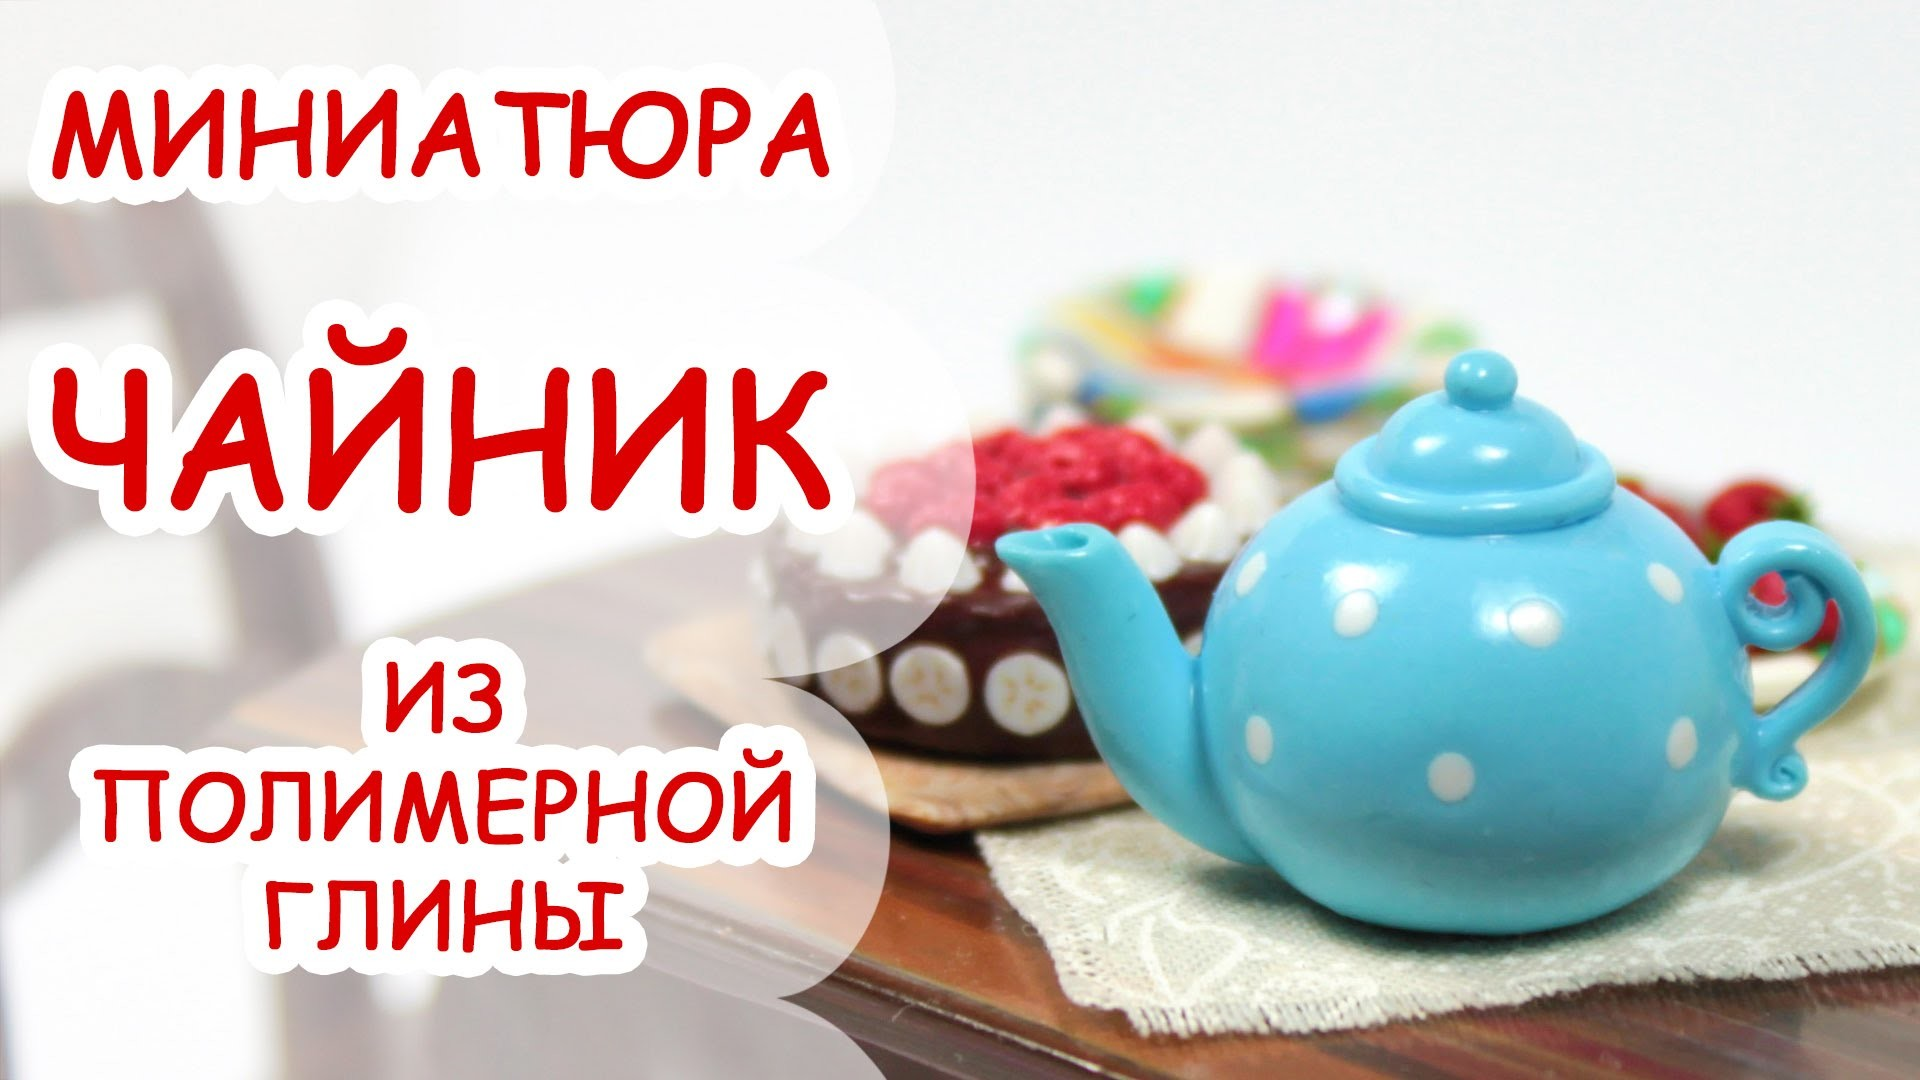 ЧАЙНИК ◆ МИНИАТЮРА #13 ◆ Polymer clay Miniature Tutorial